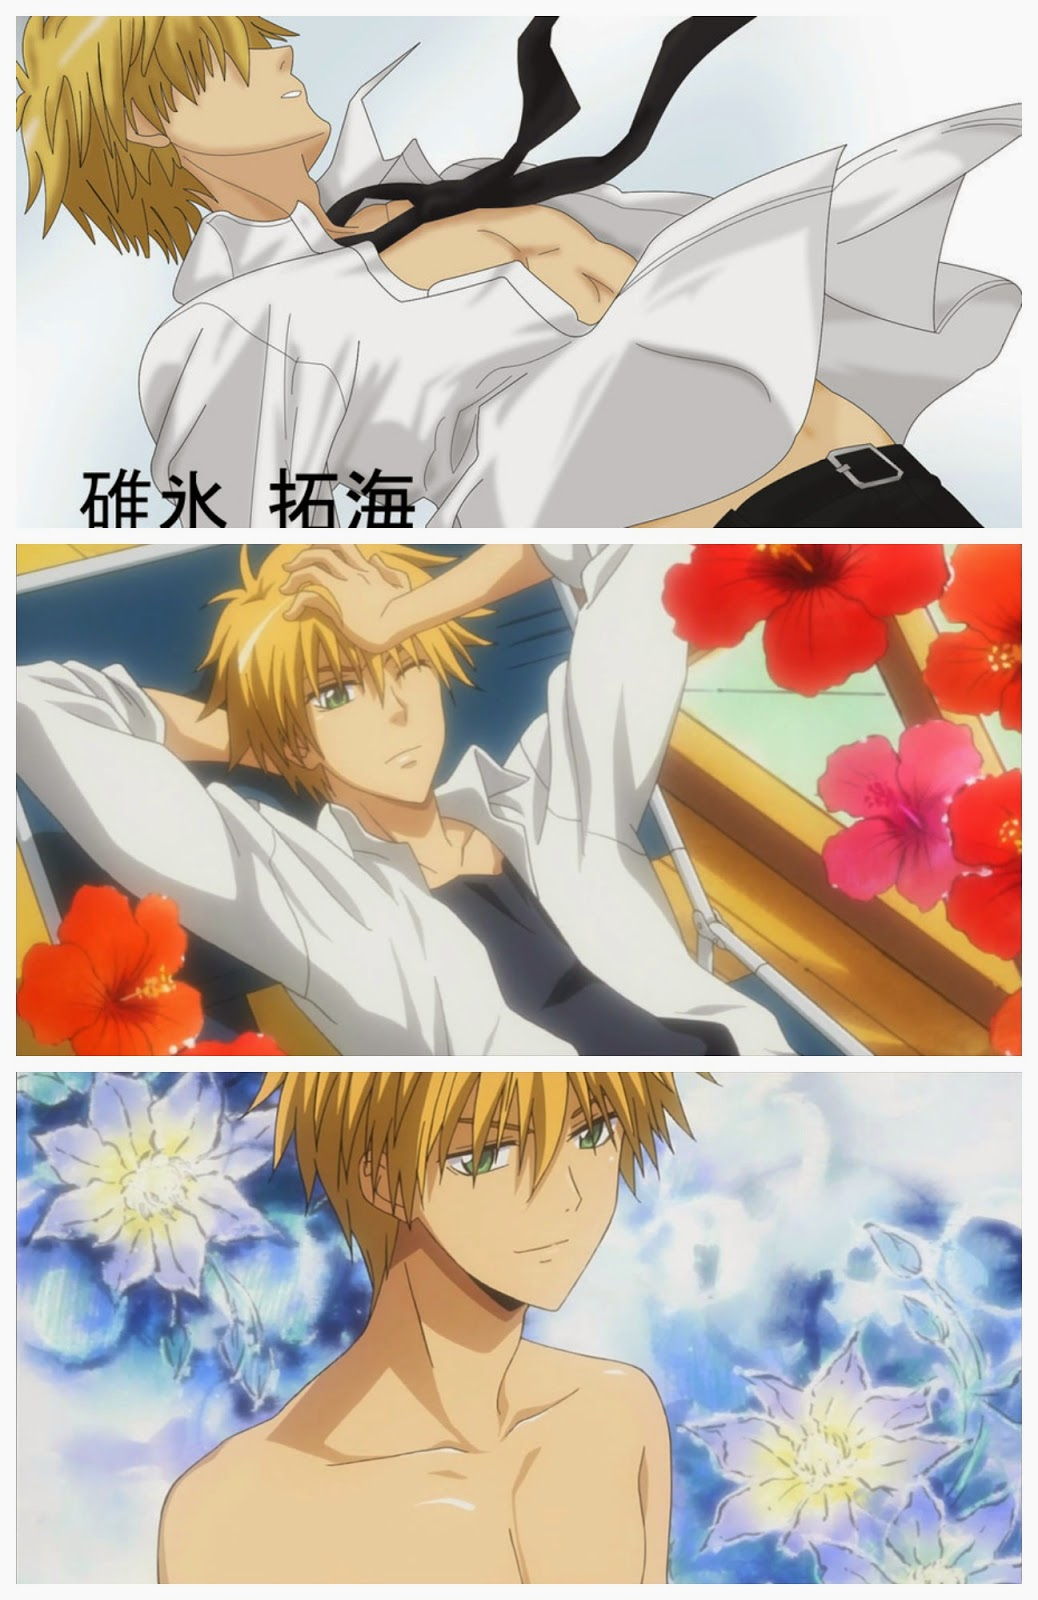 Usui Takumi, Kaichou Wa Maid-Sama, hottest anime guys, shirtless